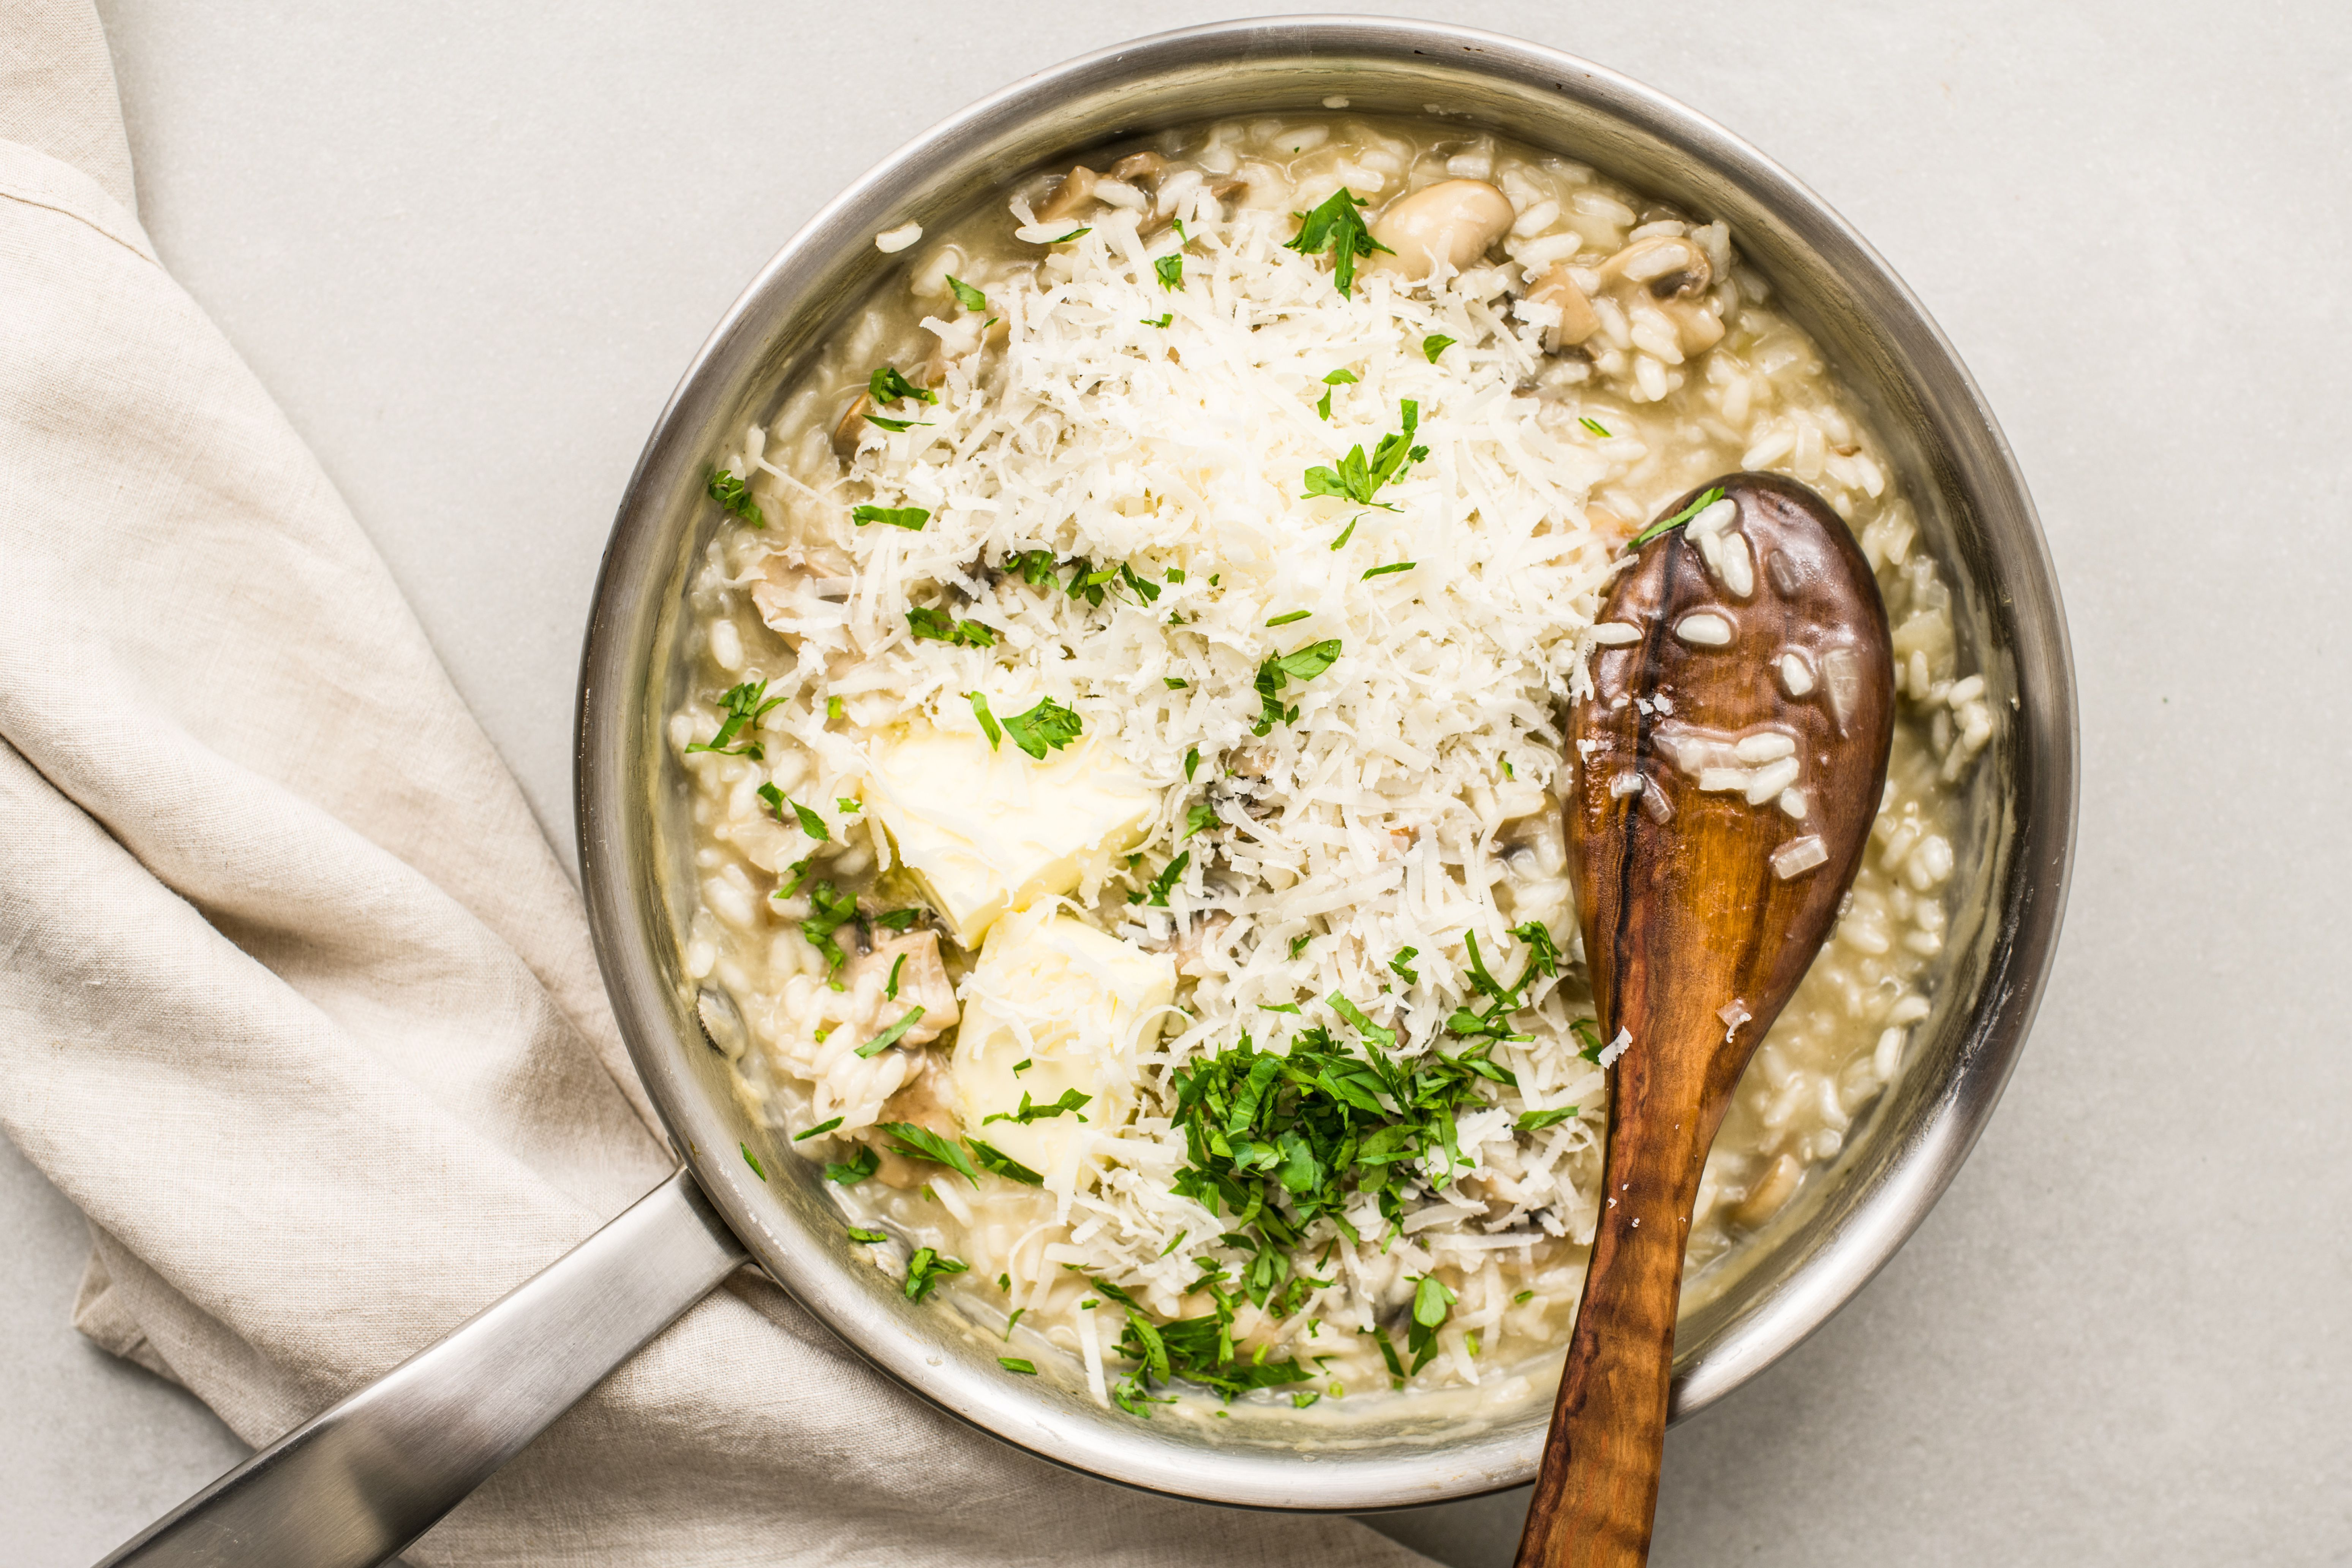 Stir in butter, cheese, and parsley